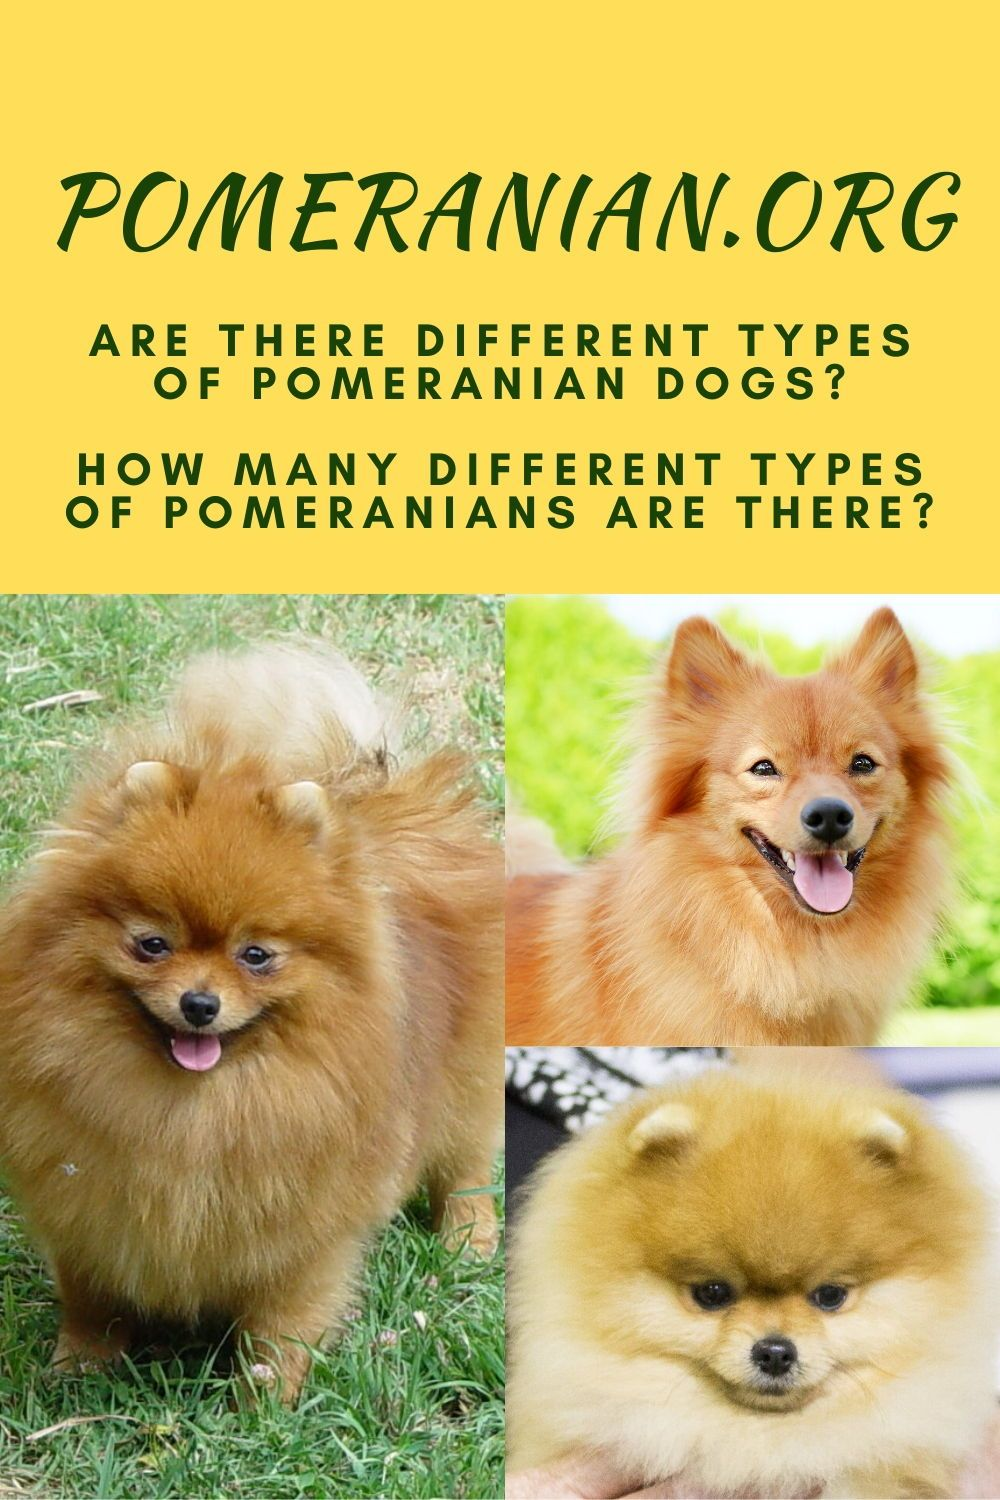 Are There Different Types Of Pomeranian Dogs In 2020 Pomeranian Dog Pomeranian Facts Working Dogs Breeds